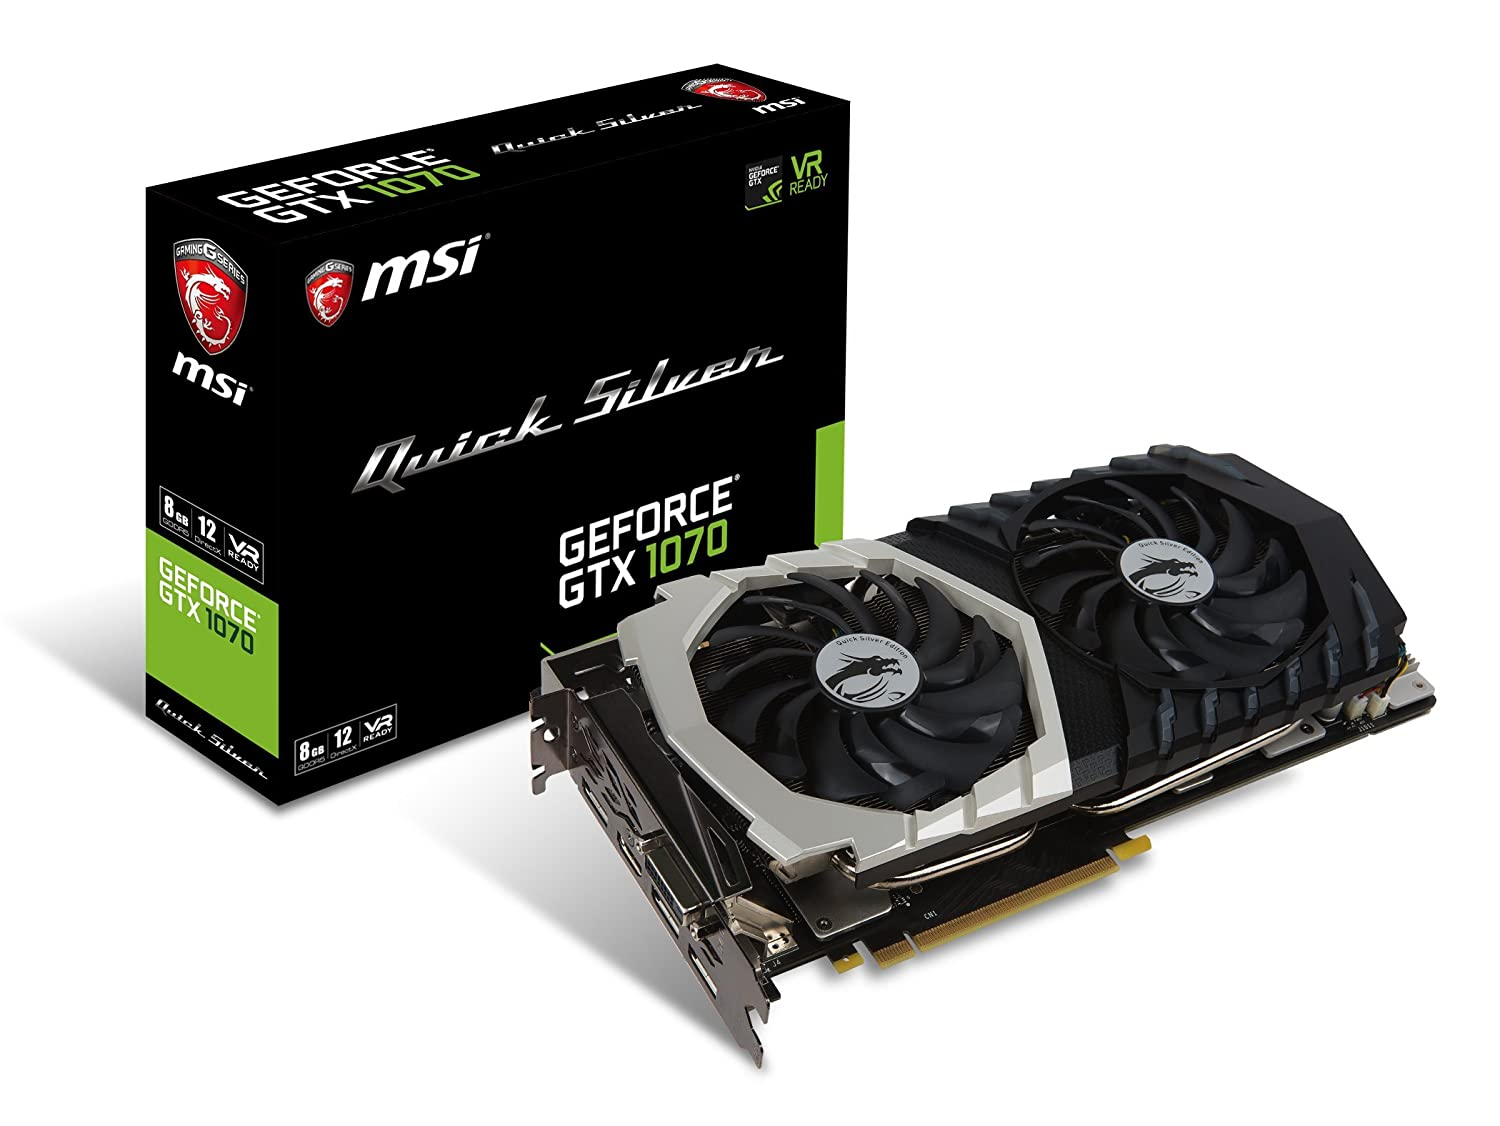 MSI Gaming GeForce GTX 1070 8GB GDDR5 SLI DirectX 12 VR Ready Graphics Card (GTX 1070 Quick Silver 8G OC)